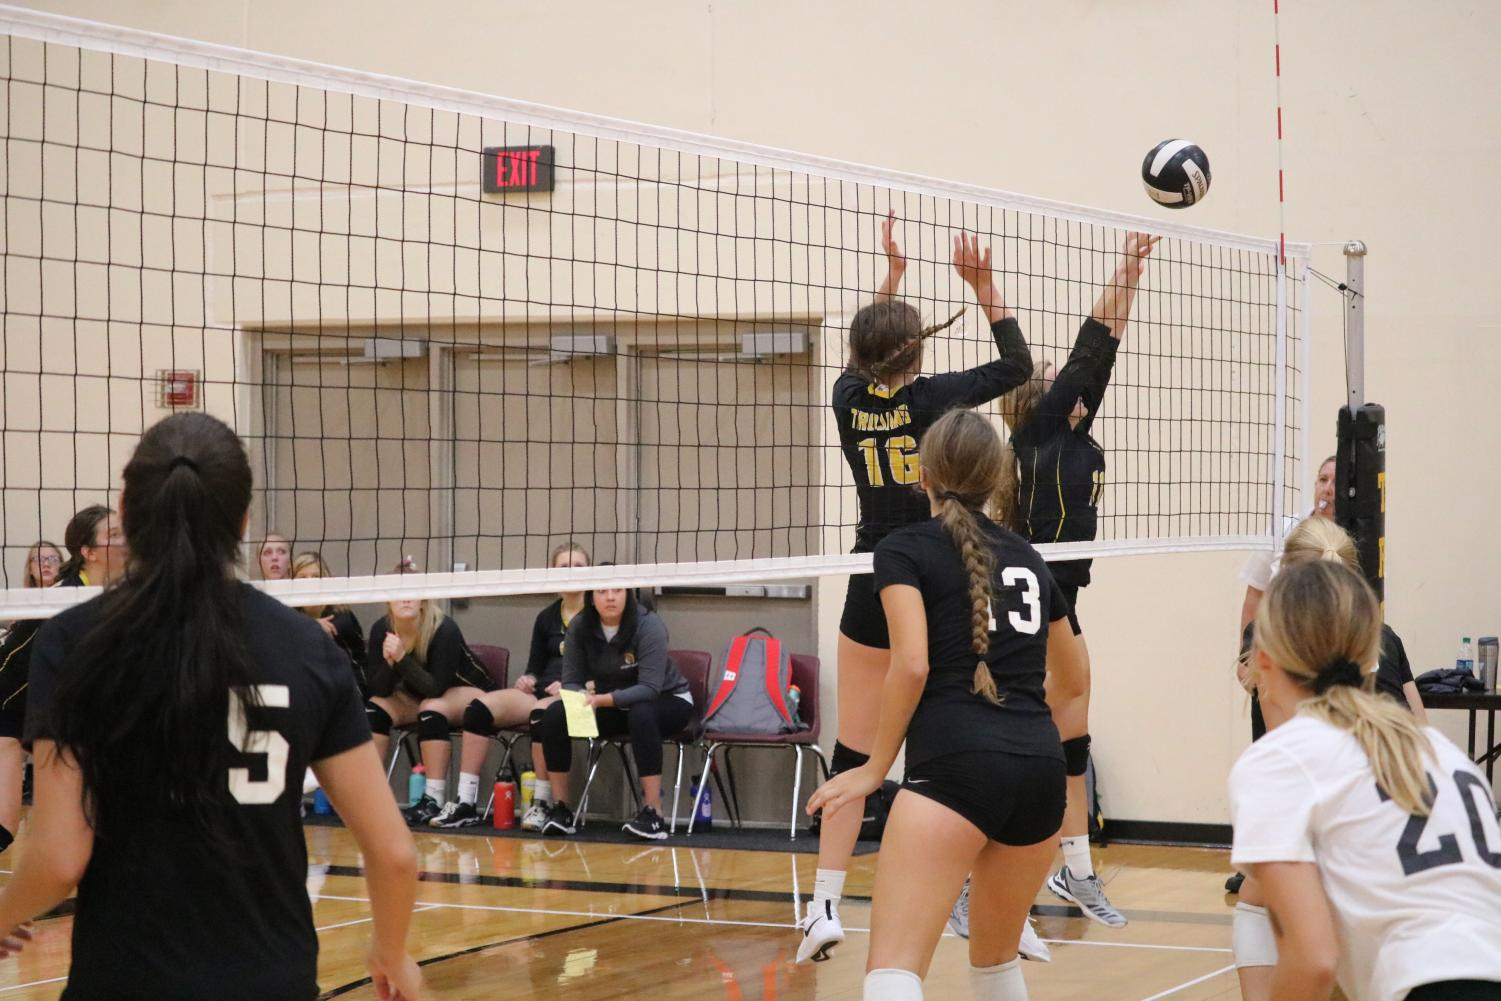 Junior Caroline Pellett sends the ball over the net while freshman Aubrey Guyer comes in for backup. The two girls combined for 13 kills on Tuesday night.